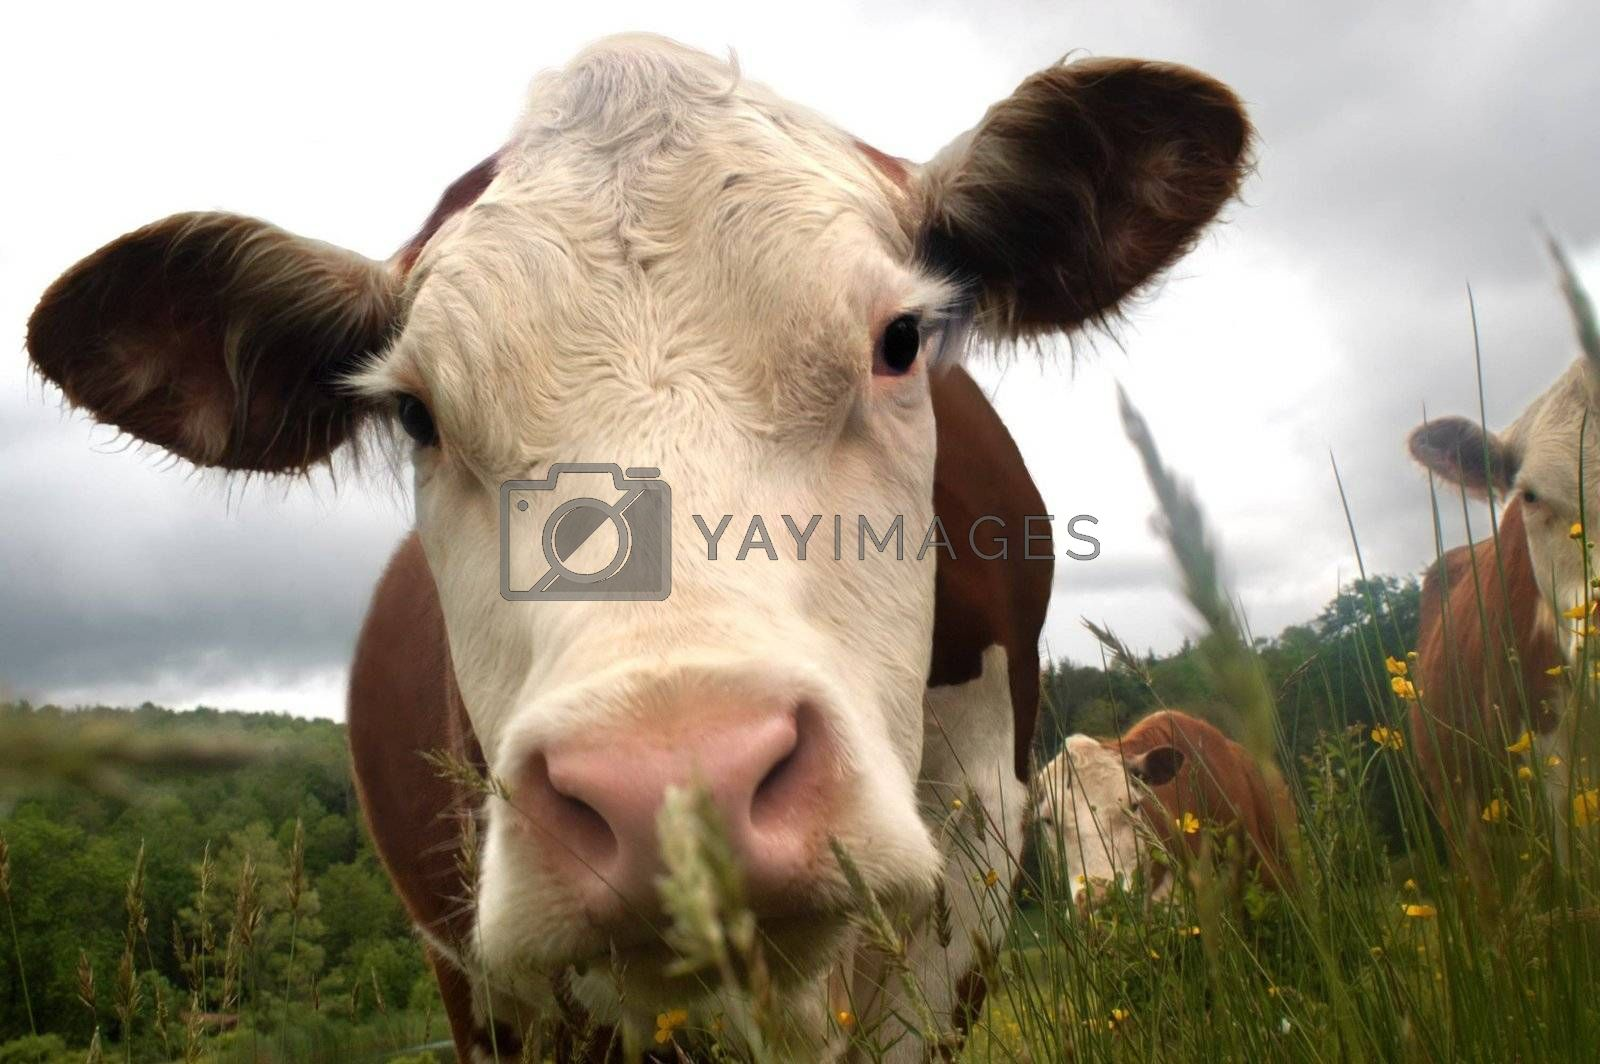 My all time favorite humorous cow photo. I love the perspective here...almost fish eyed as this herford comes in for a very close look at the viewer.